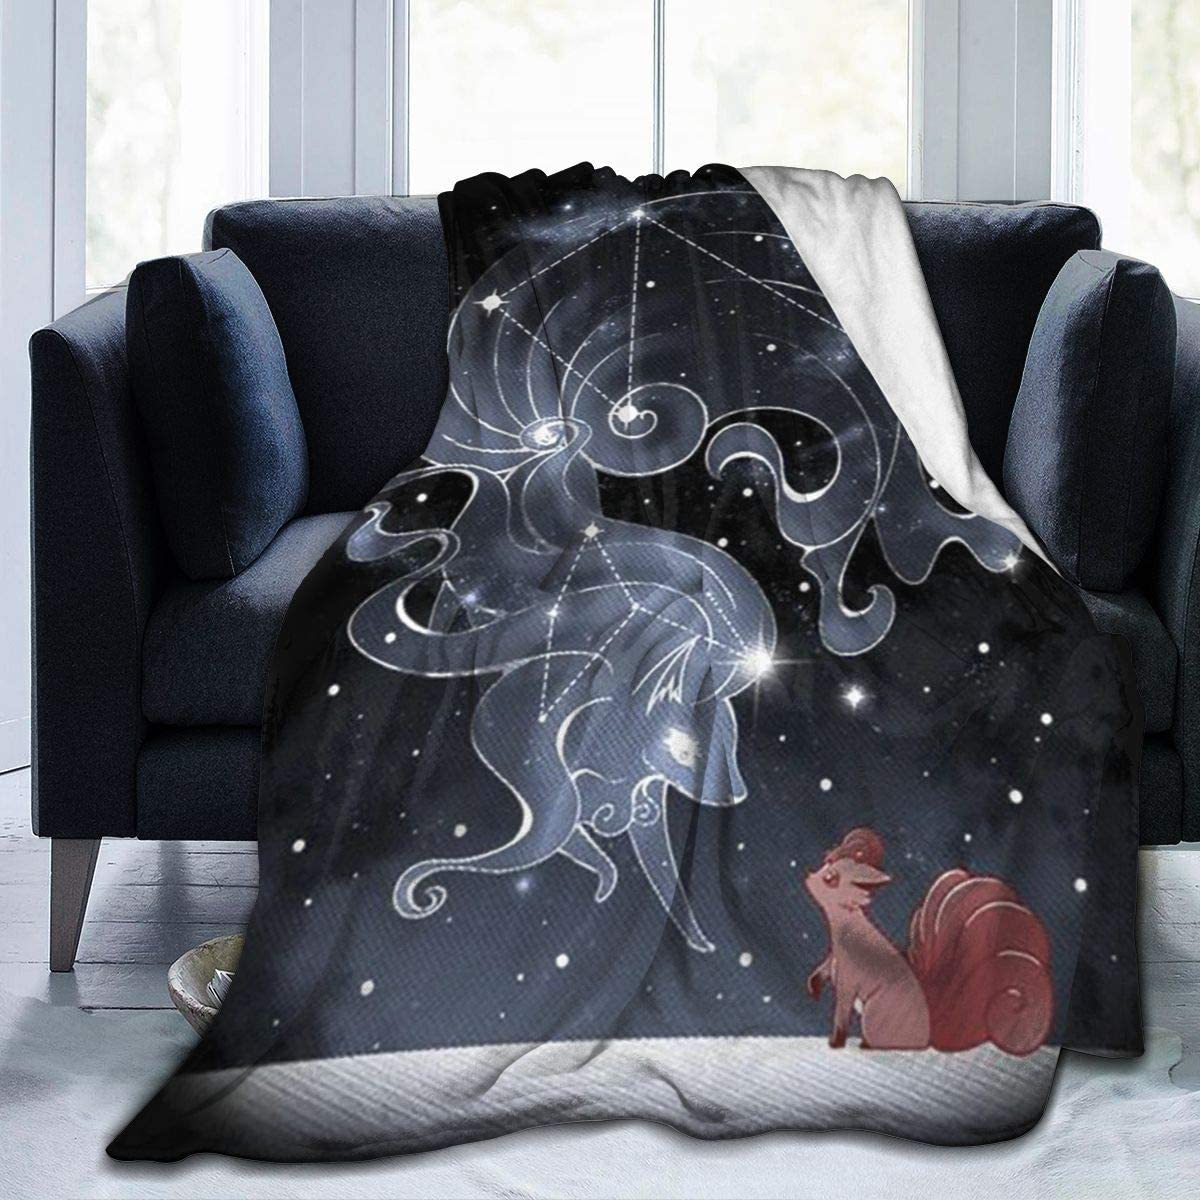 Poke-mon Ninetails Constellation Fleece Blanket Ultra-Soft Lightweight All Seasons Fit Bed Couch Chair Office Flight and Outdoors